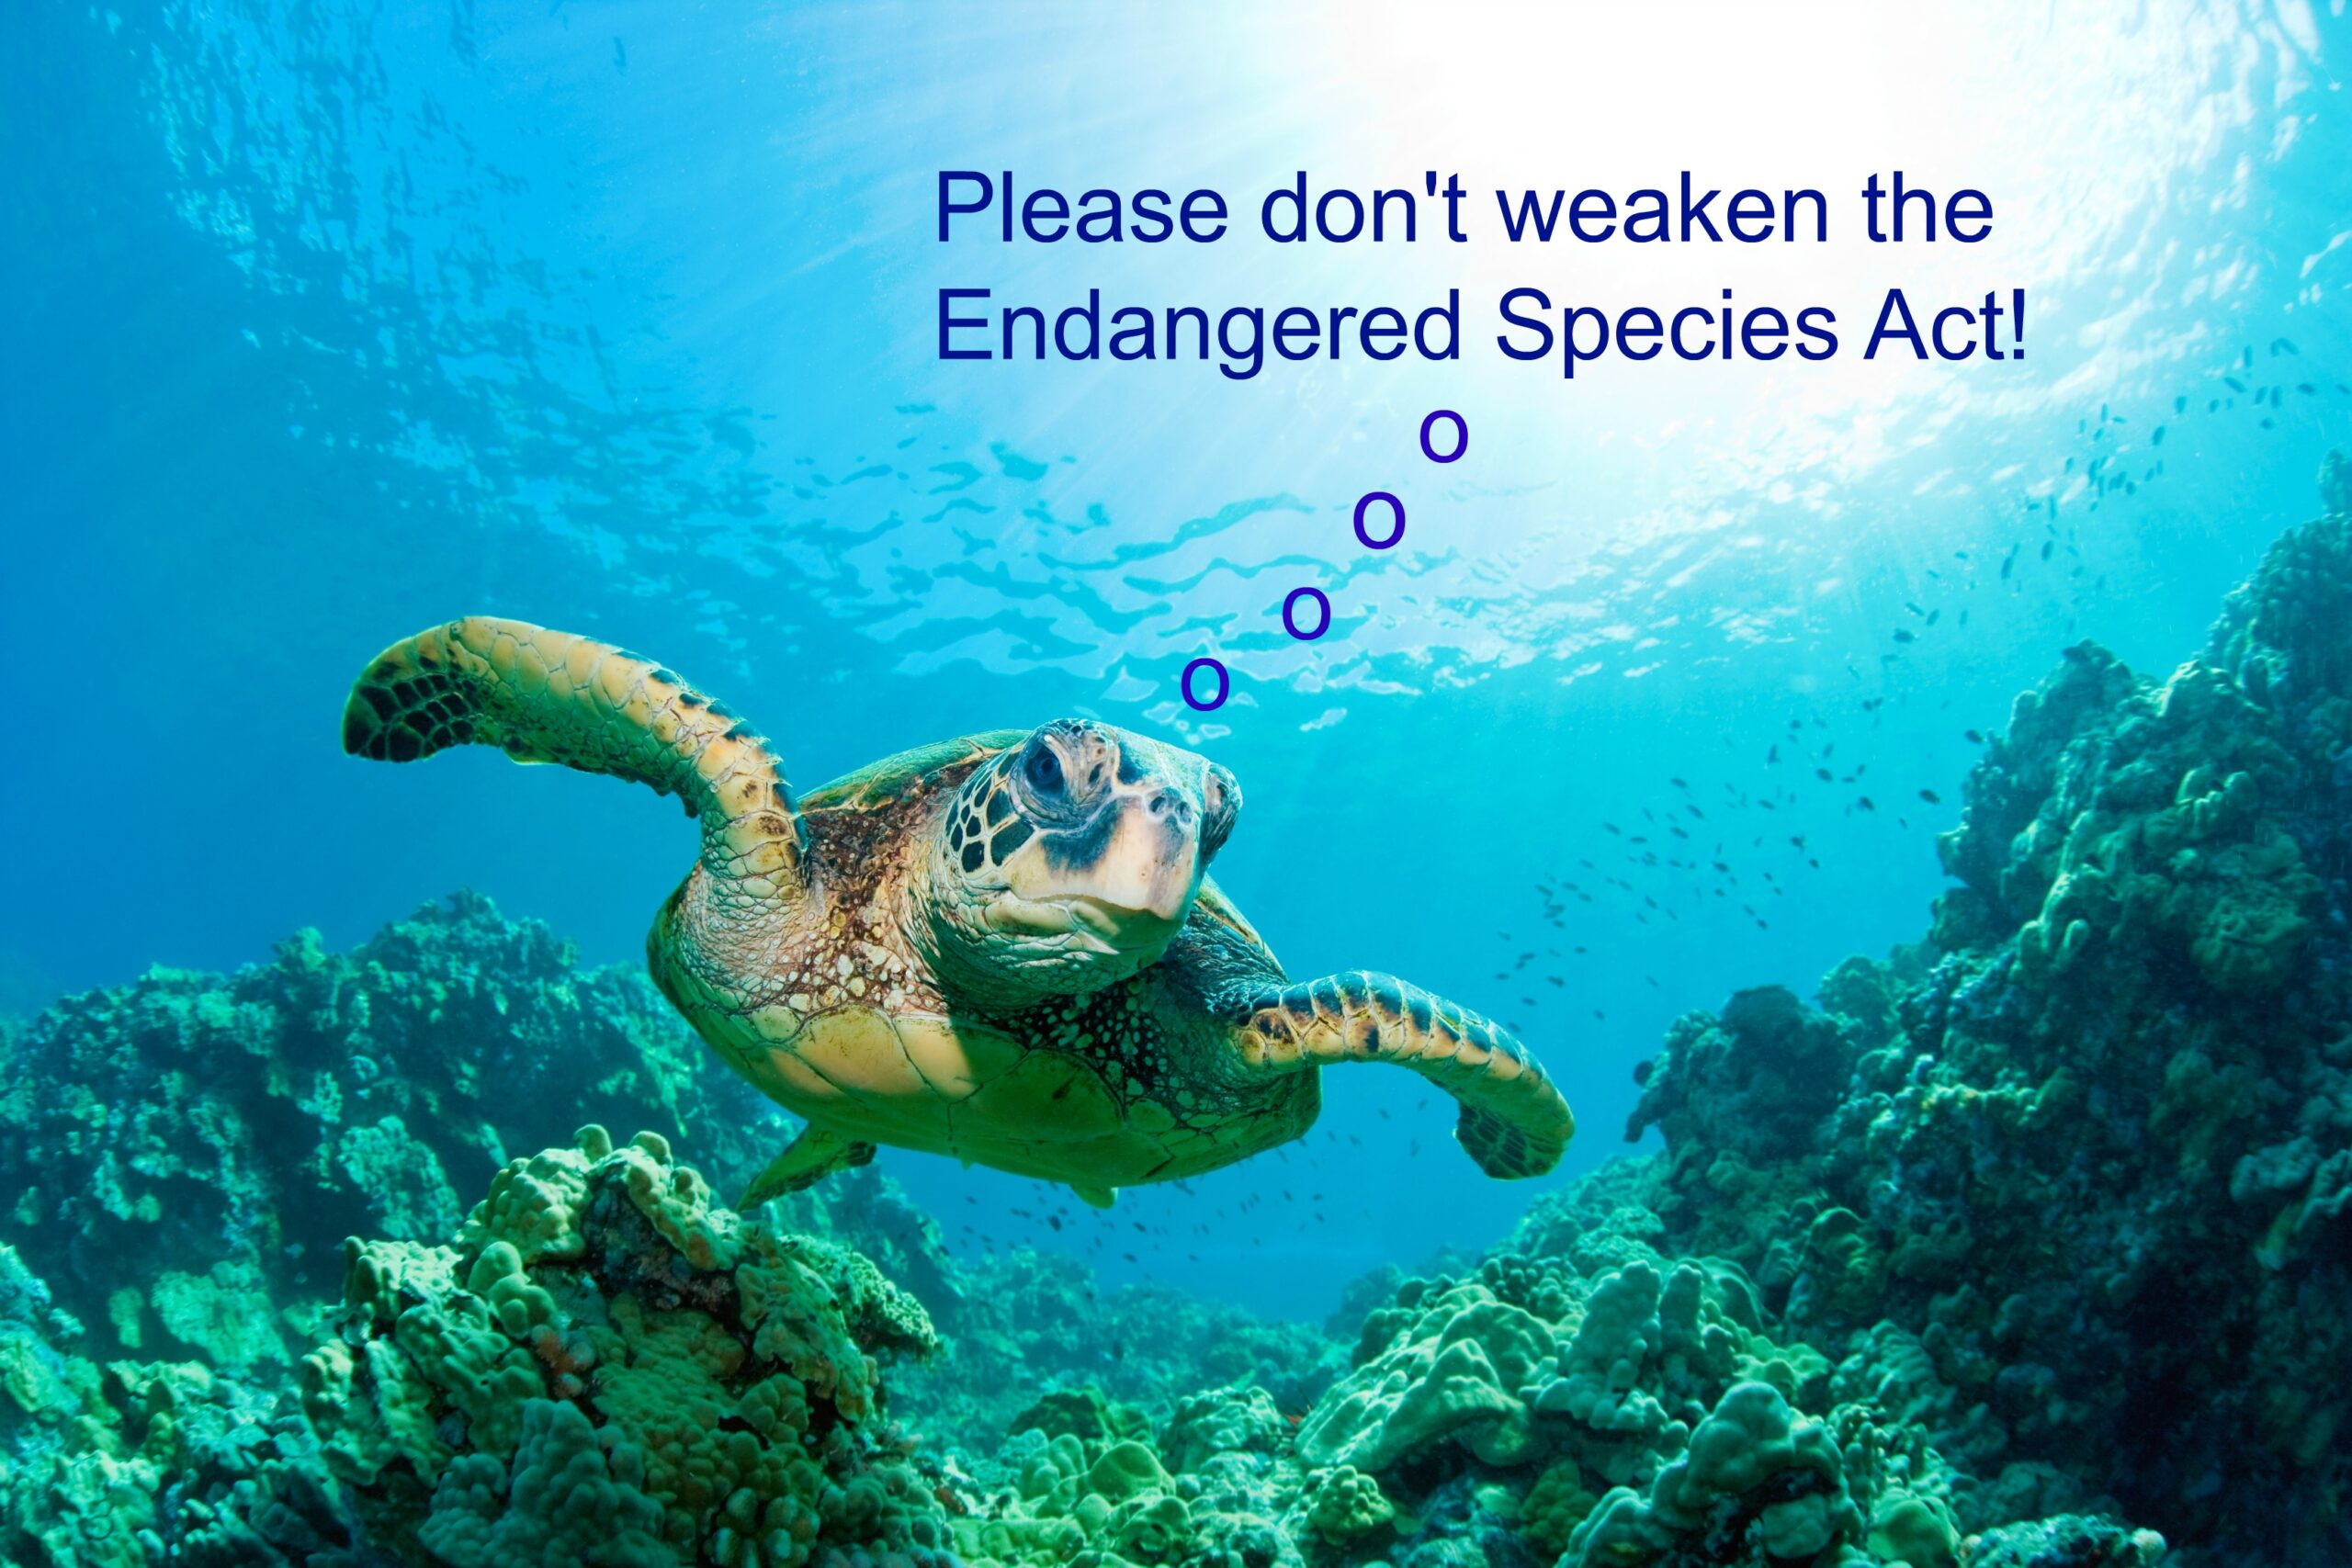 Governors Group Works to Undermine Endangered Species Act